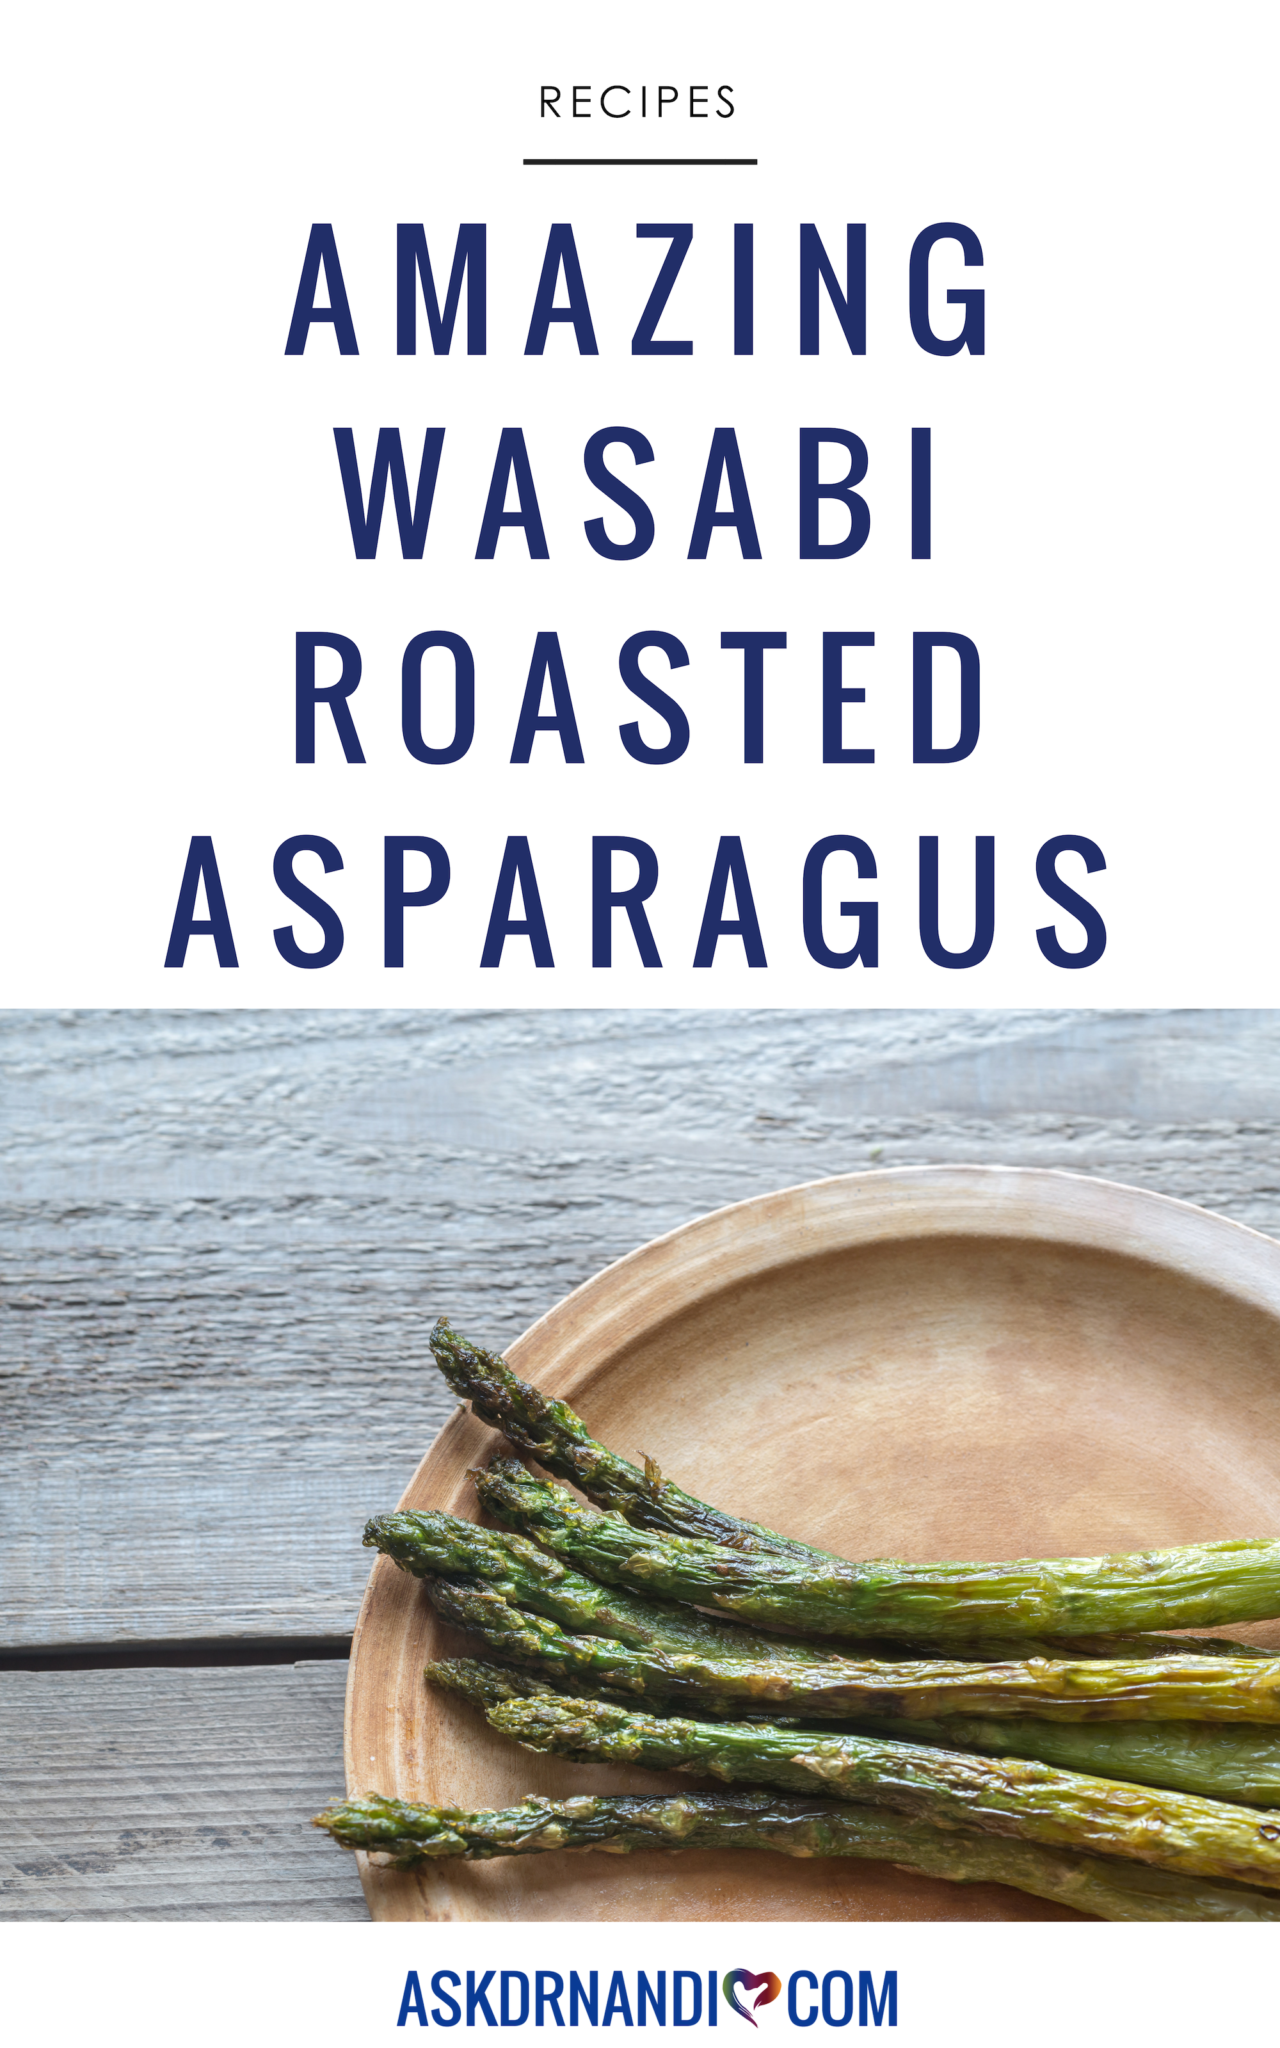 Looking For Something Different To Add To Your Next Family Meal? Try This Healthy Wasabi Roasted Asparagus Recipe by Dr. Nandi!